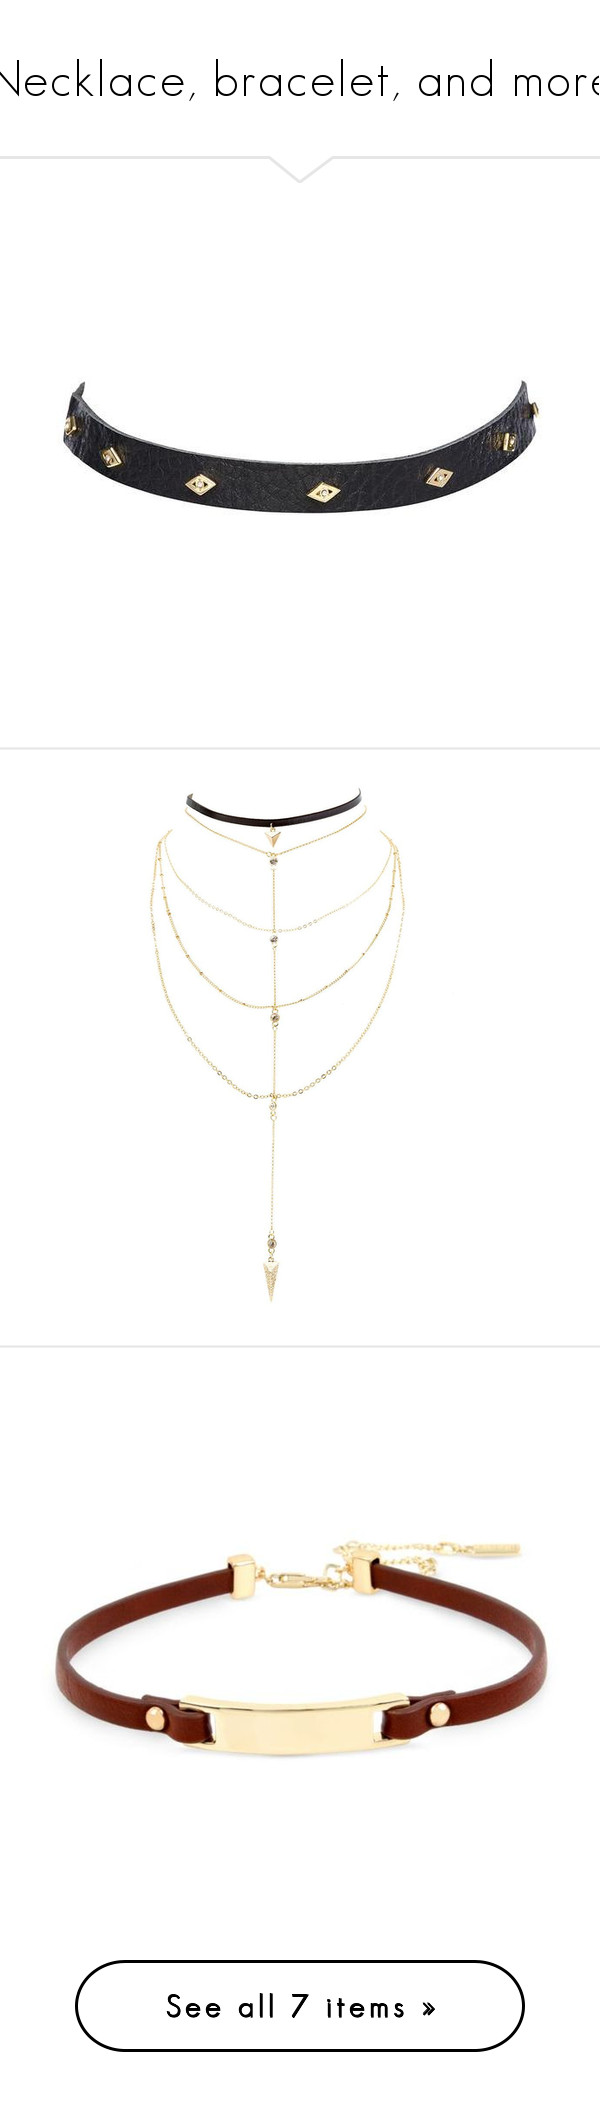 """Necklace, bracelet, and more"" by vampirekitty34 ❤ liked on Polyvore featuring jewelry, necklaces, evil eye necklace, studded jewelry, gold evil eye necklace, studded choker necklace, gold evil eye jewelry, accessories, gold and layered chain necklace"